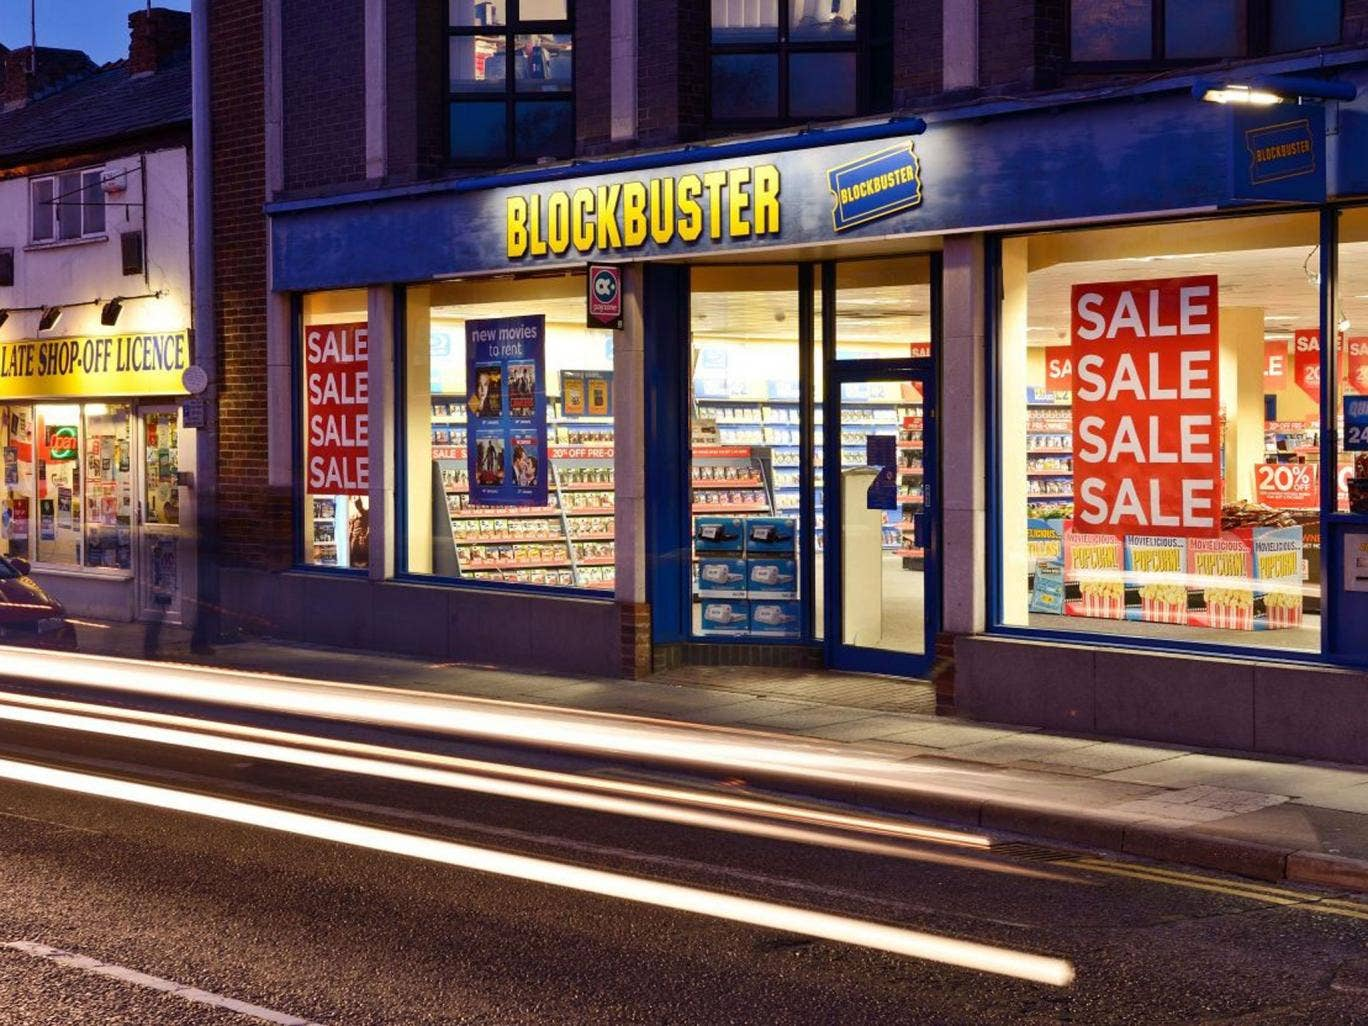 Blockbuster appears to be on an inevitable decline